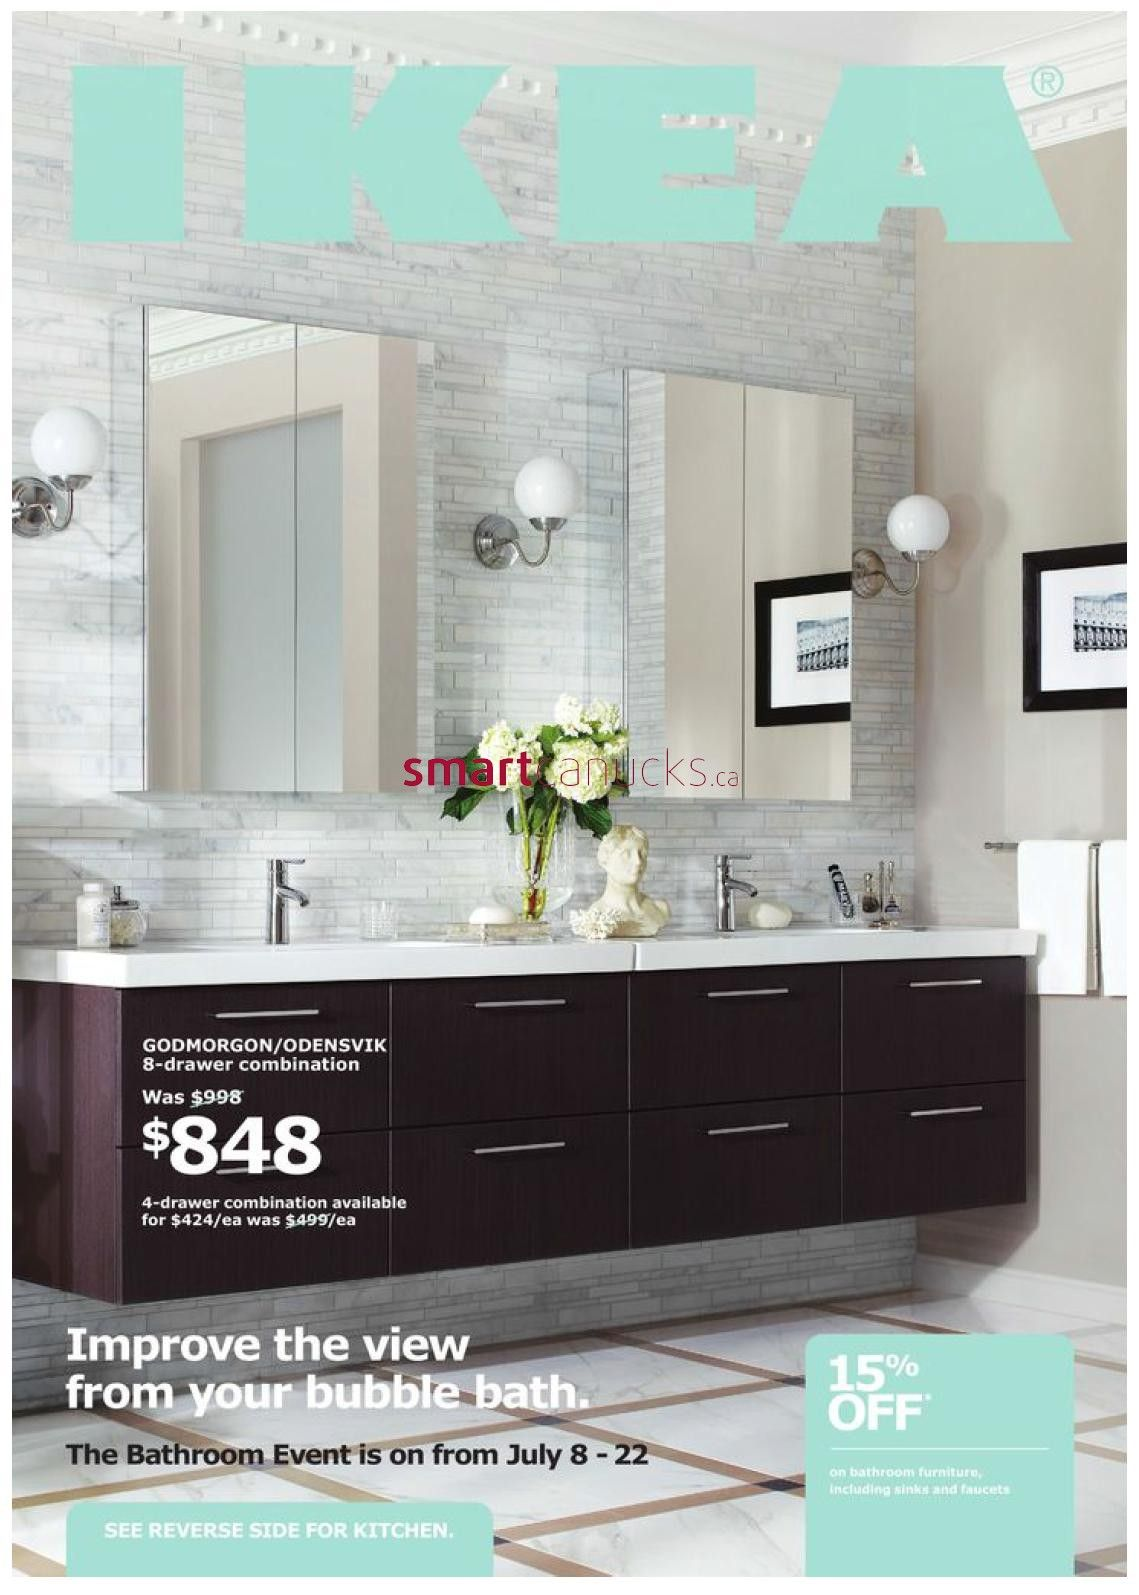 Ikea bathroom floor cabinet - Ikea Godmorgon Odensvik Sink Cabinets With Four Drawers And Lillholmen Wall